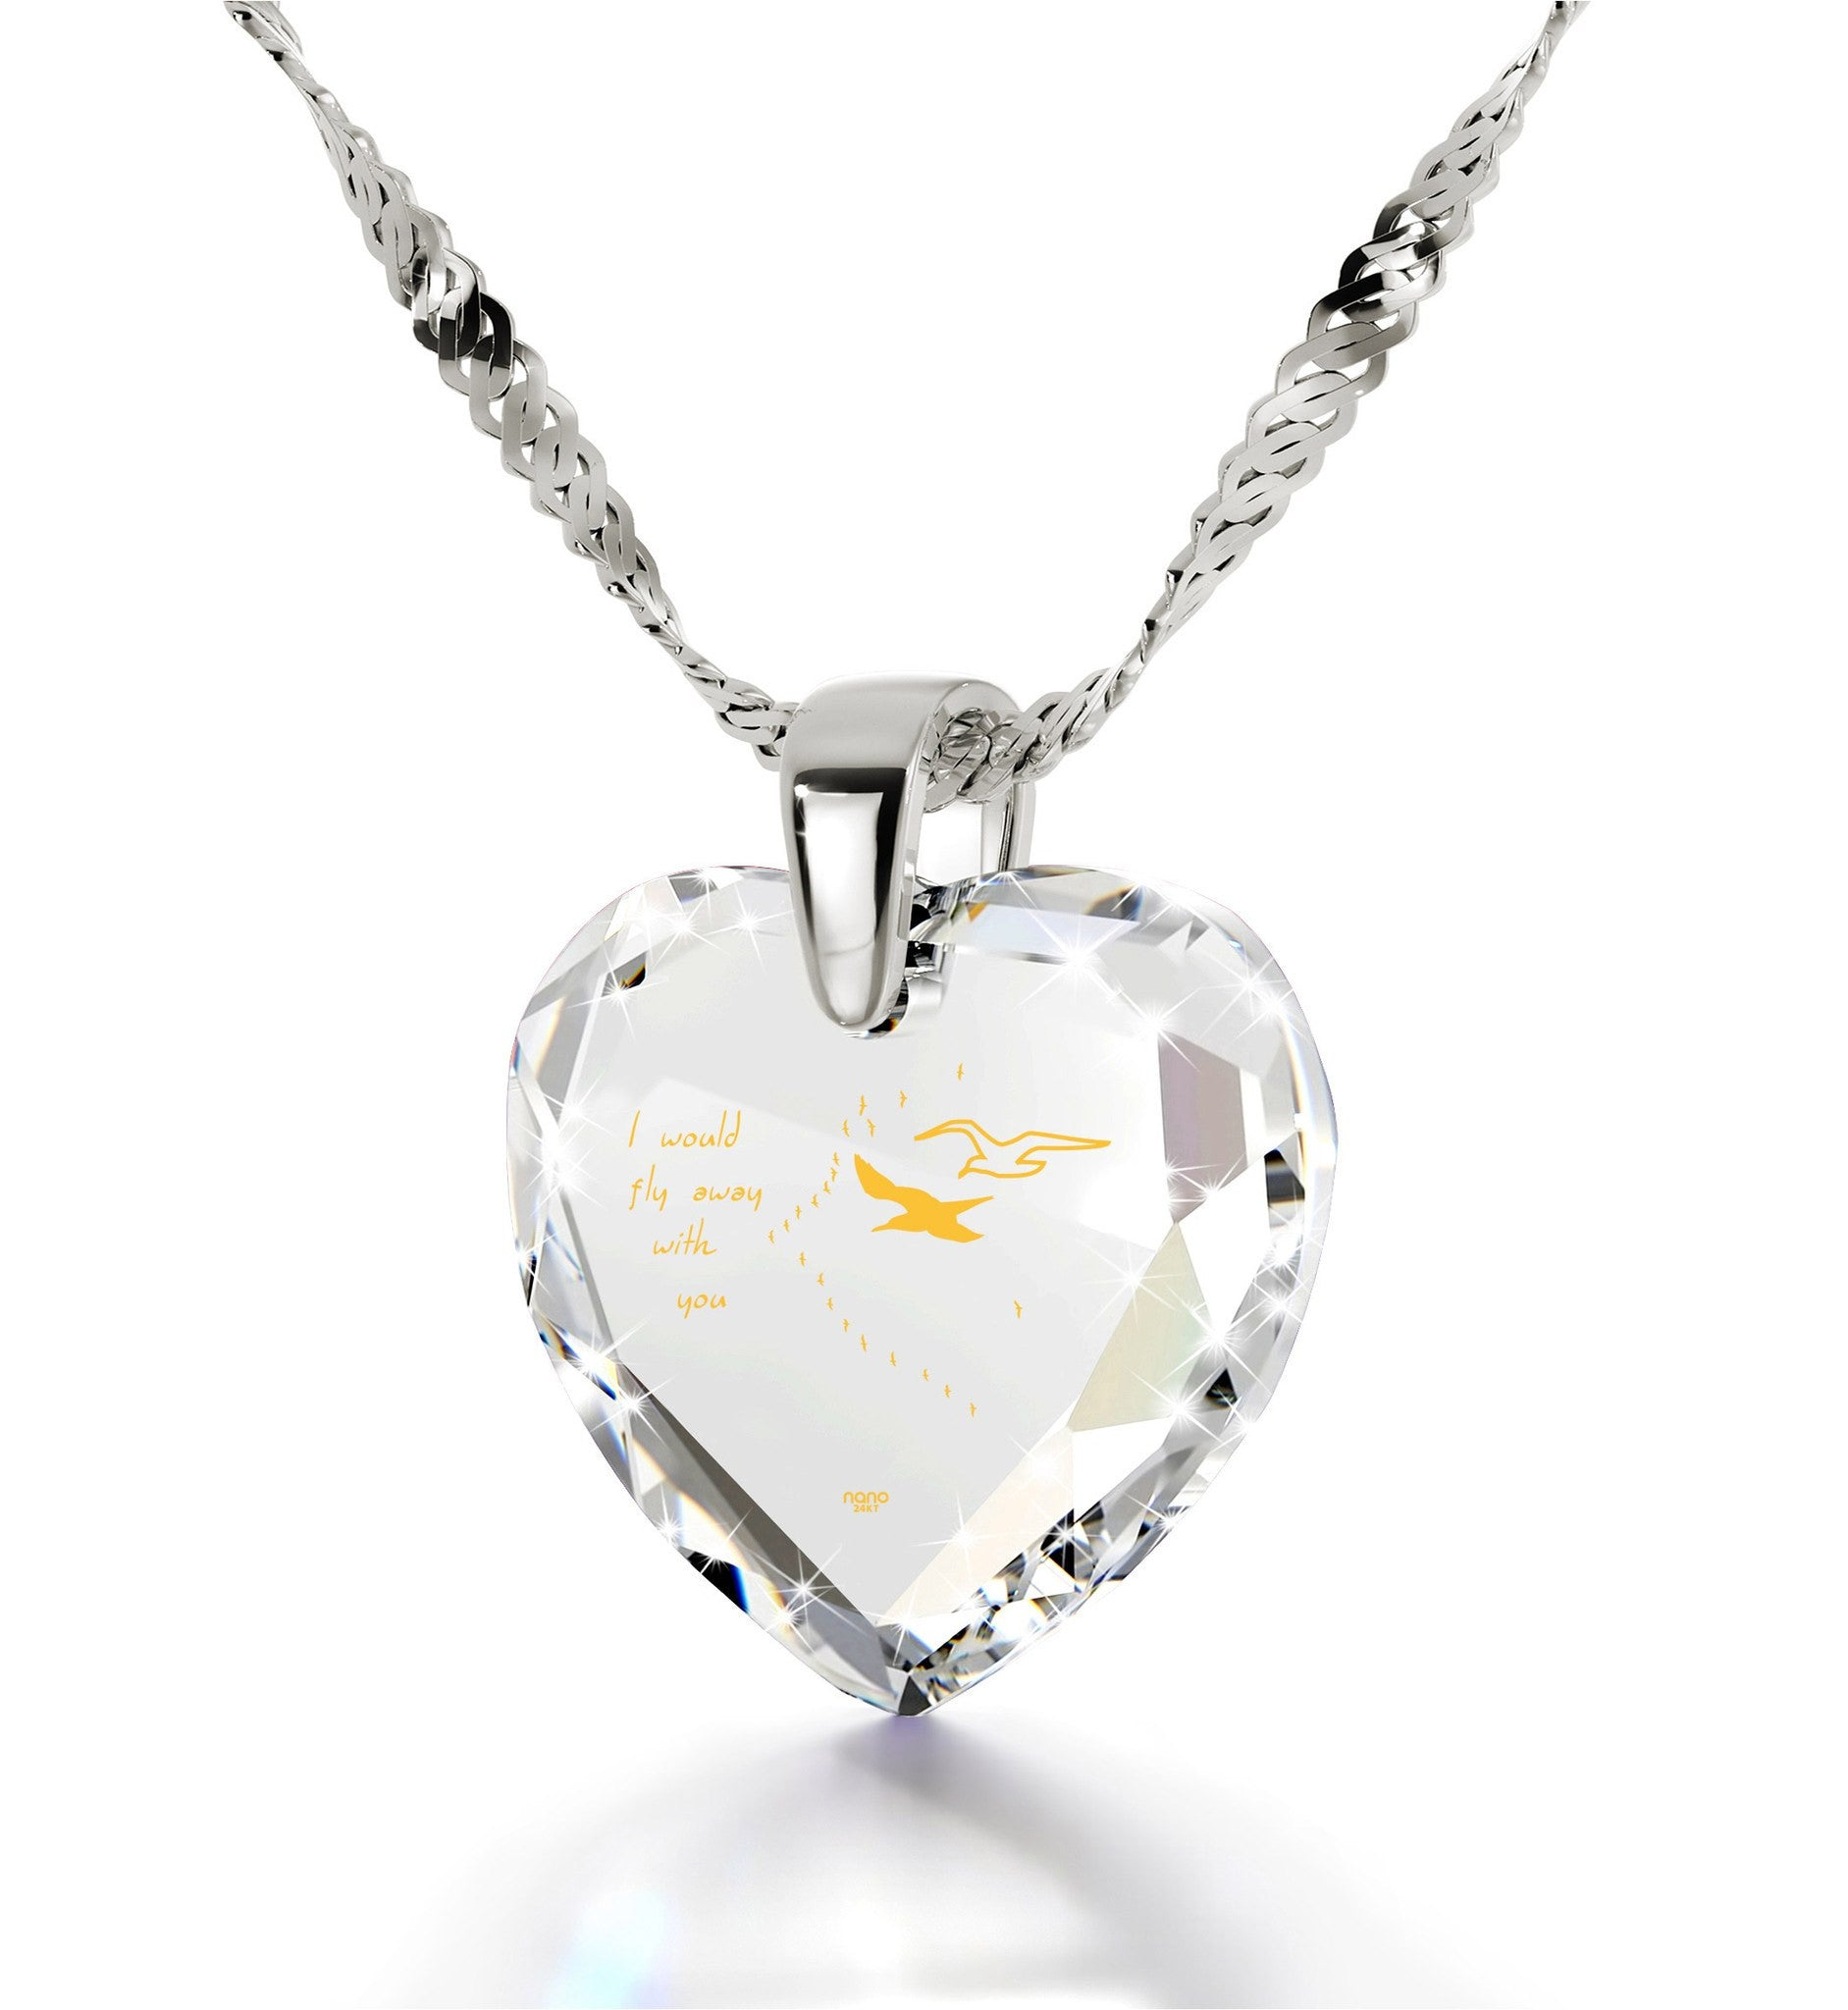 Wife Birthday Ideas Cubic Zirconia Necklace Anniversary Gifts For Girlfriend By Nano